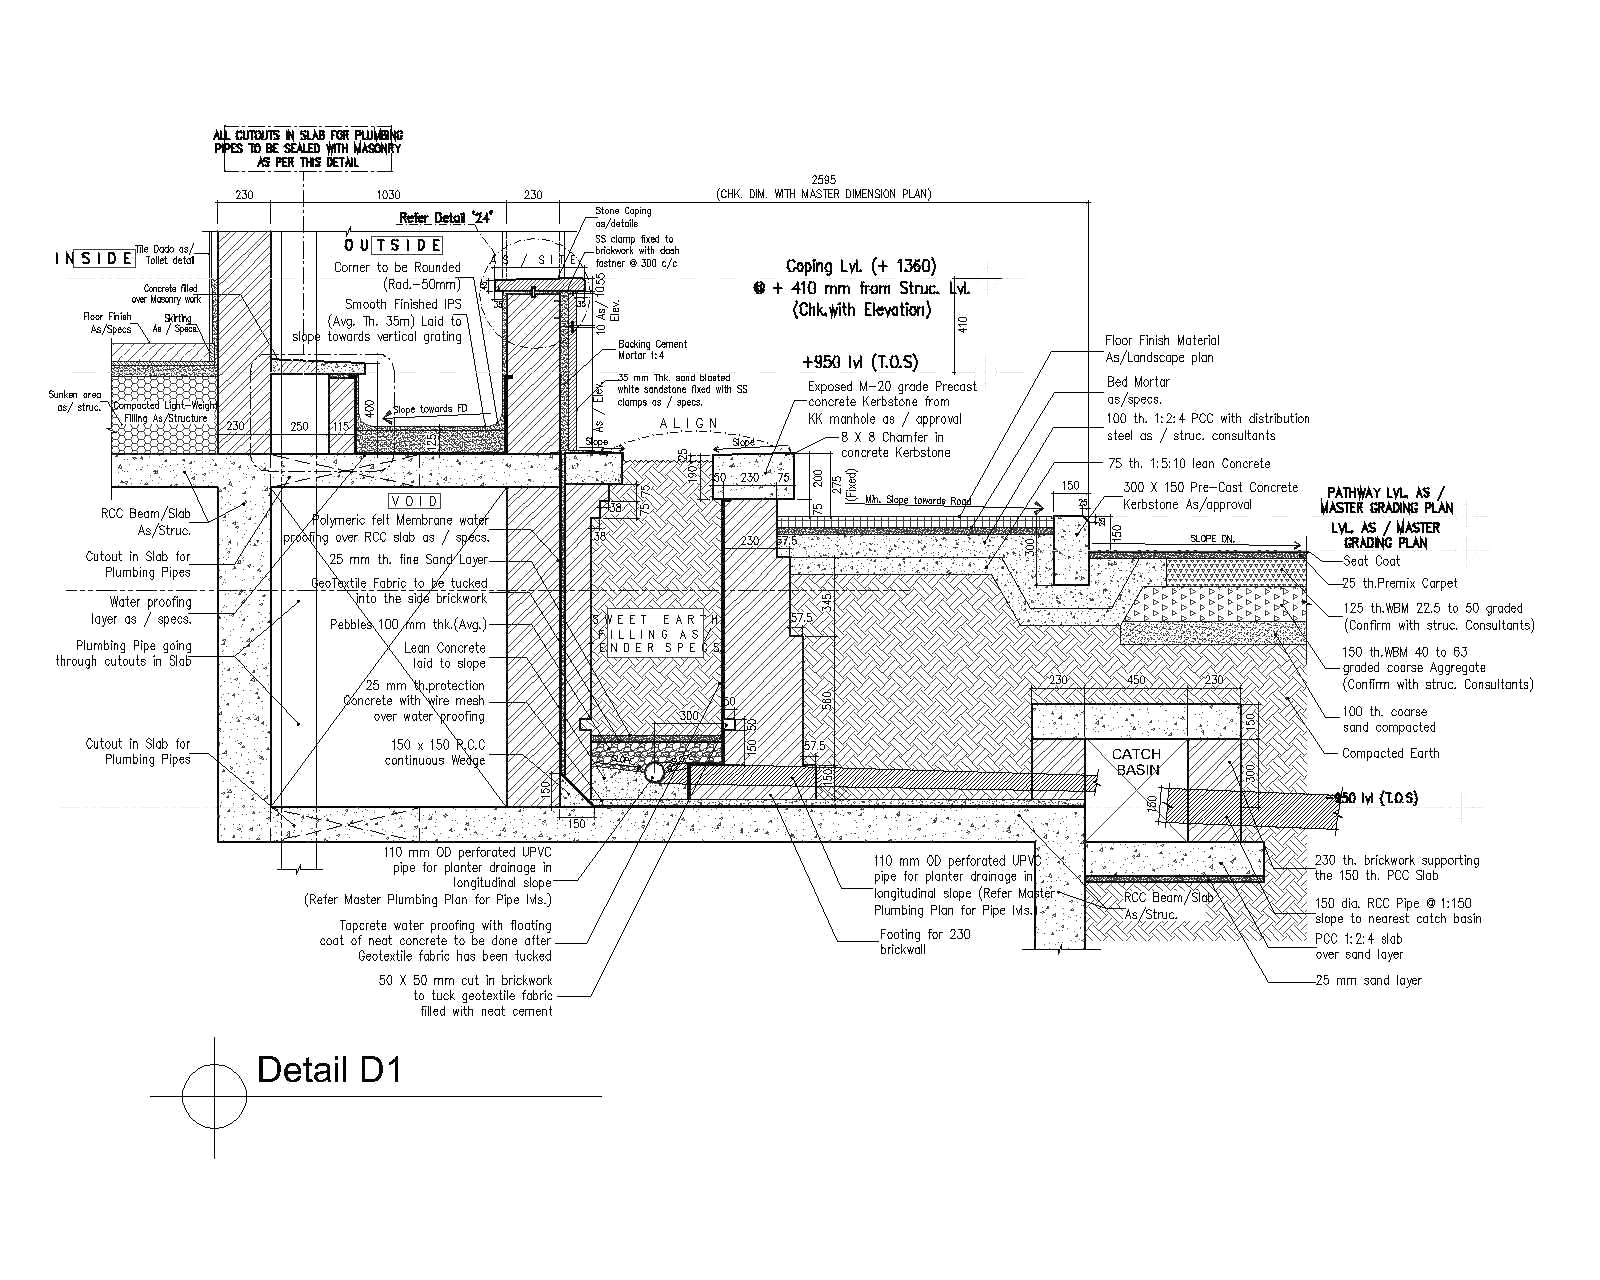 Simple Drawing Of A Dog House Plan for Dog House New Simple Dog House Plans Awesome Dog House